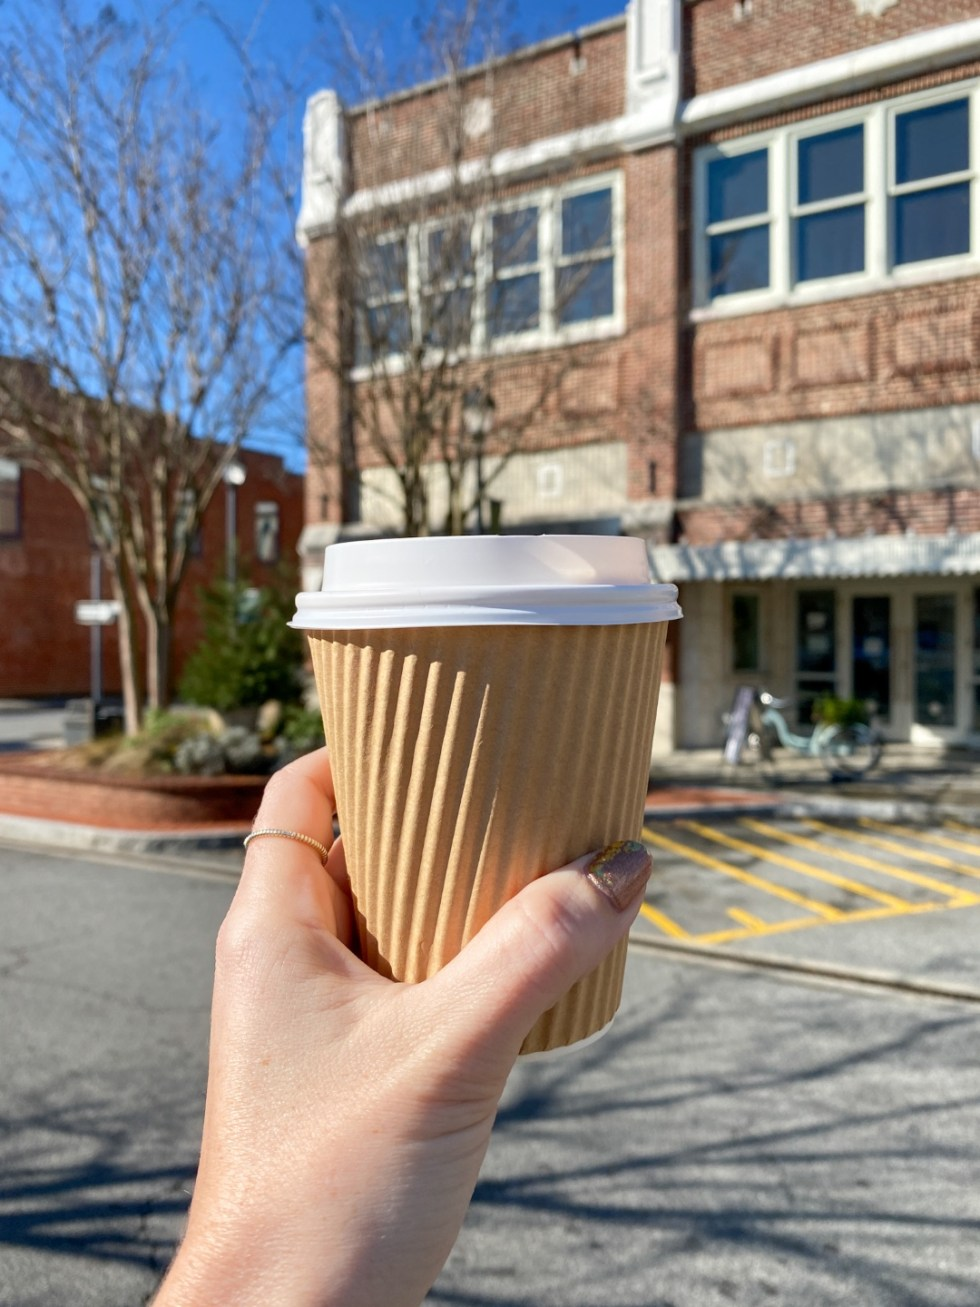 An Update on My North Carolina 100 County Tour - I'm Fixin' To - @imfixintoblog | Things to do in North Carolina by popular NC travel blog, I'm Fixin' To: image of a woman holding a cup of coffee.